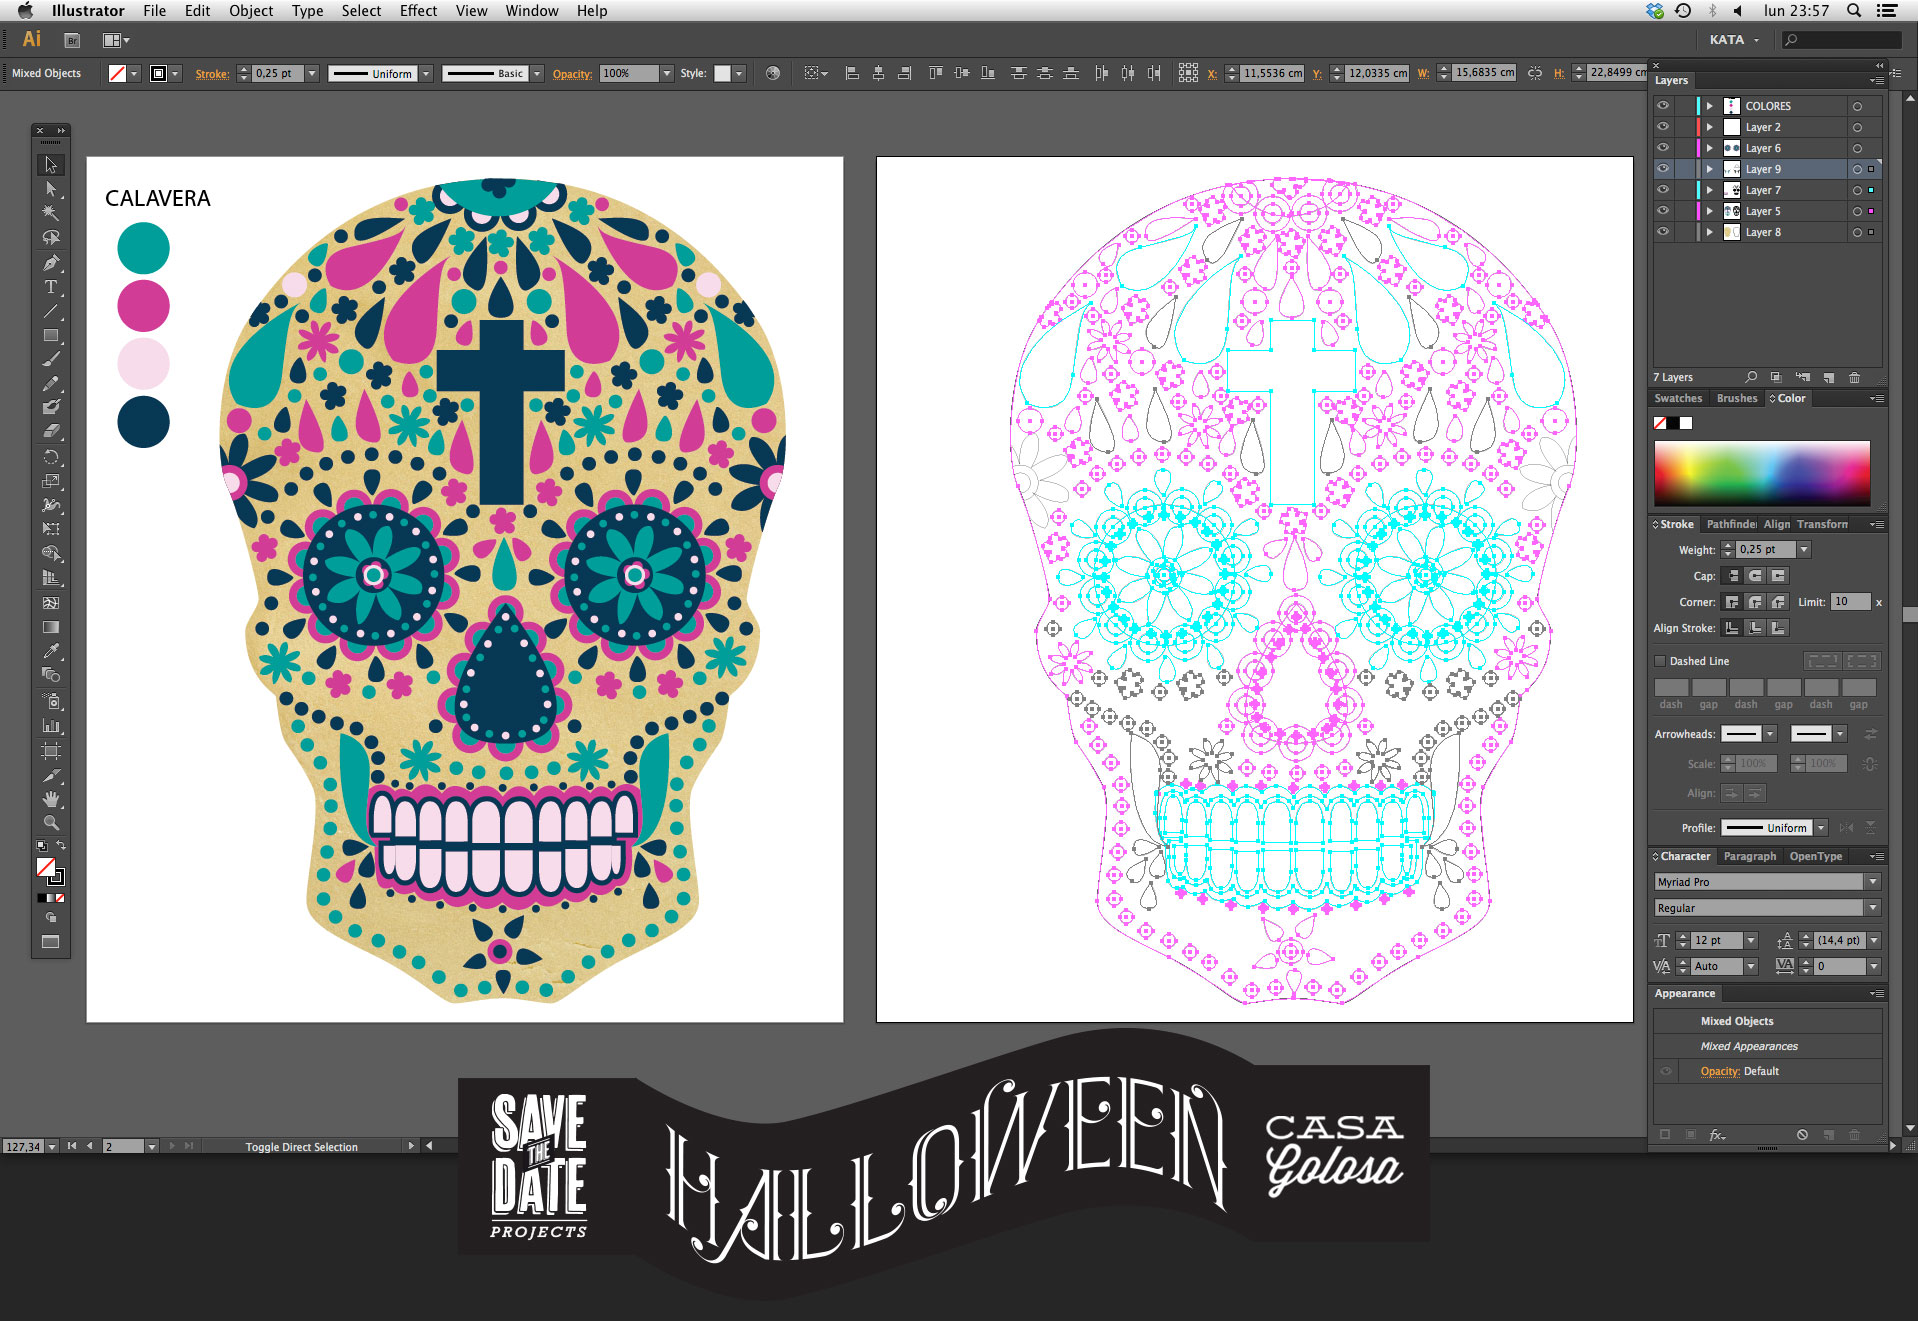 Diseno-calavera-vectorizada-por-Save-the-date-projects